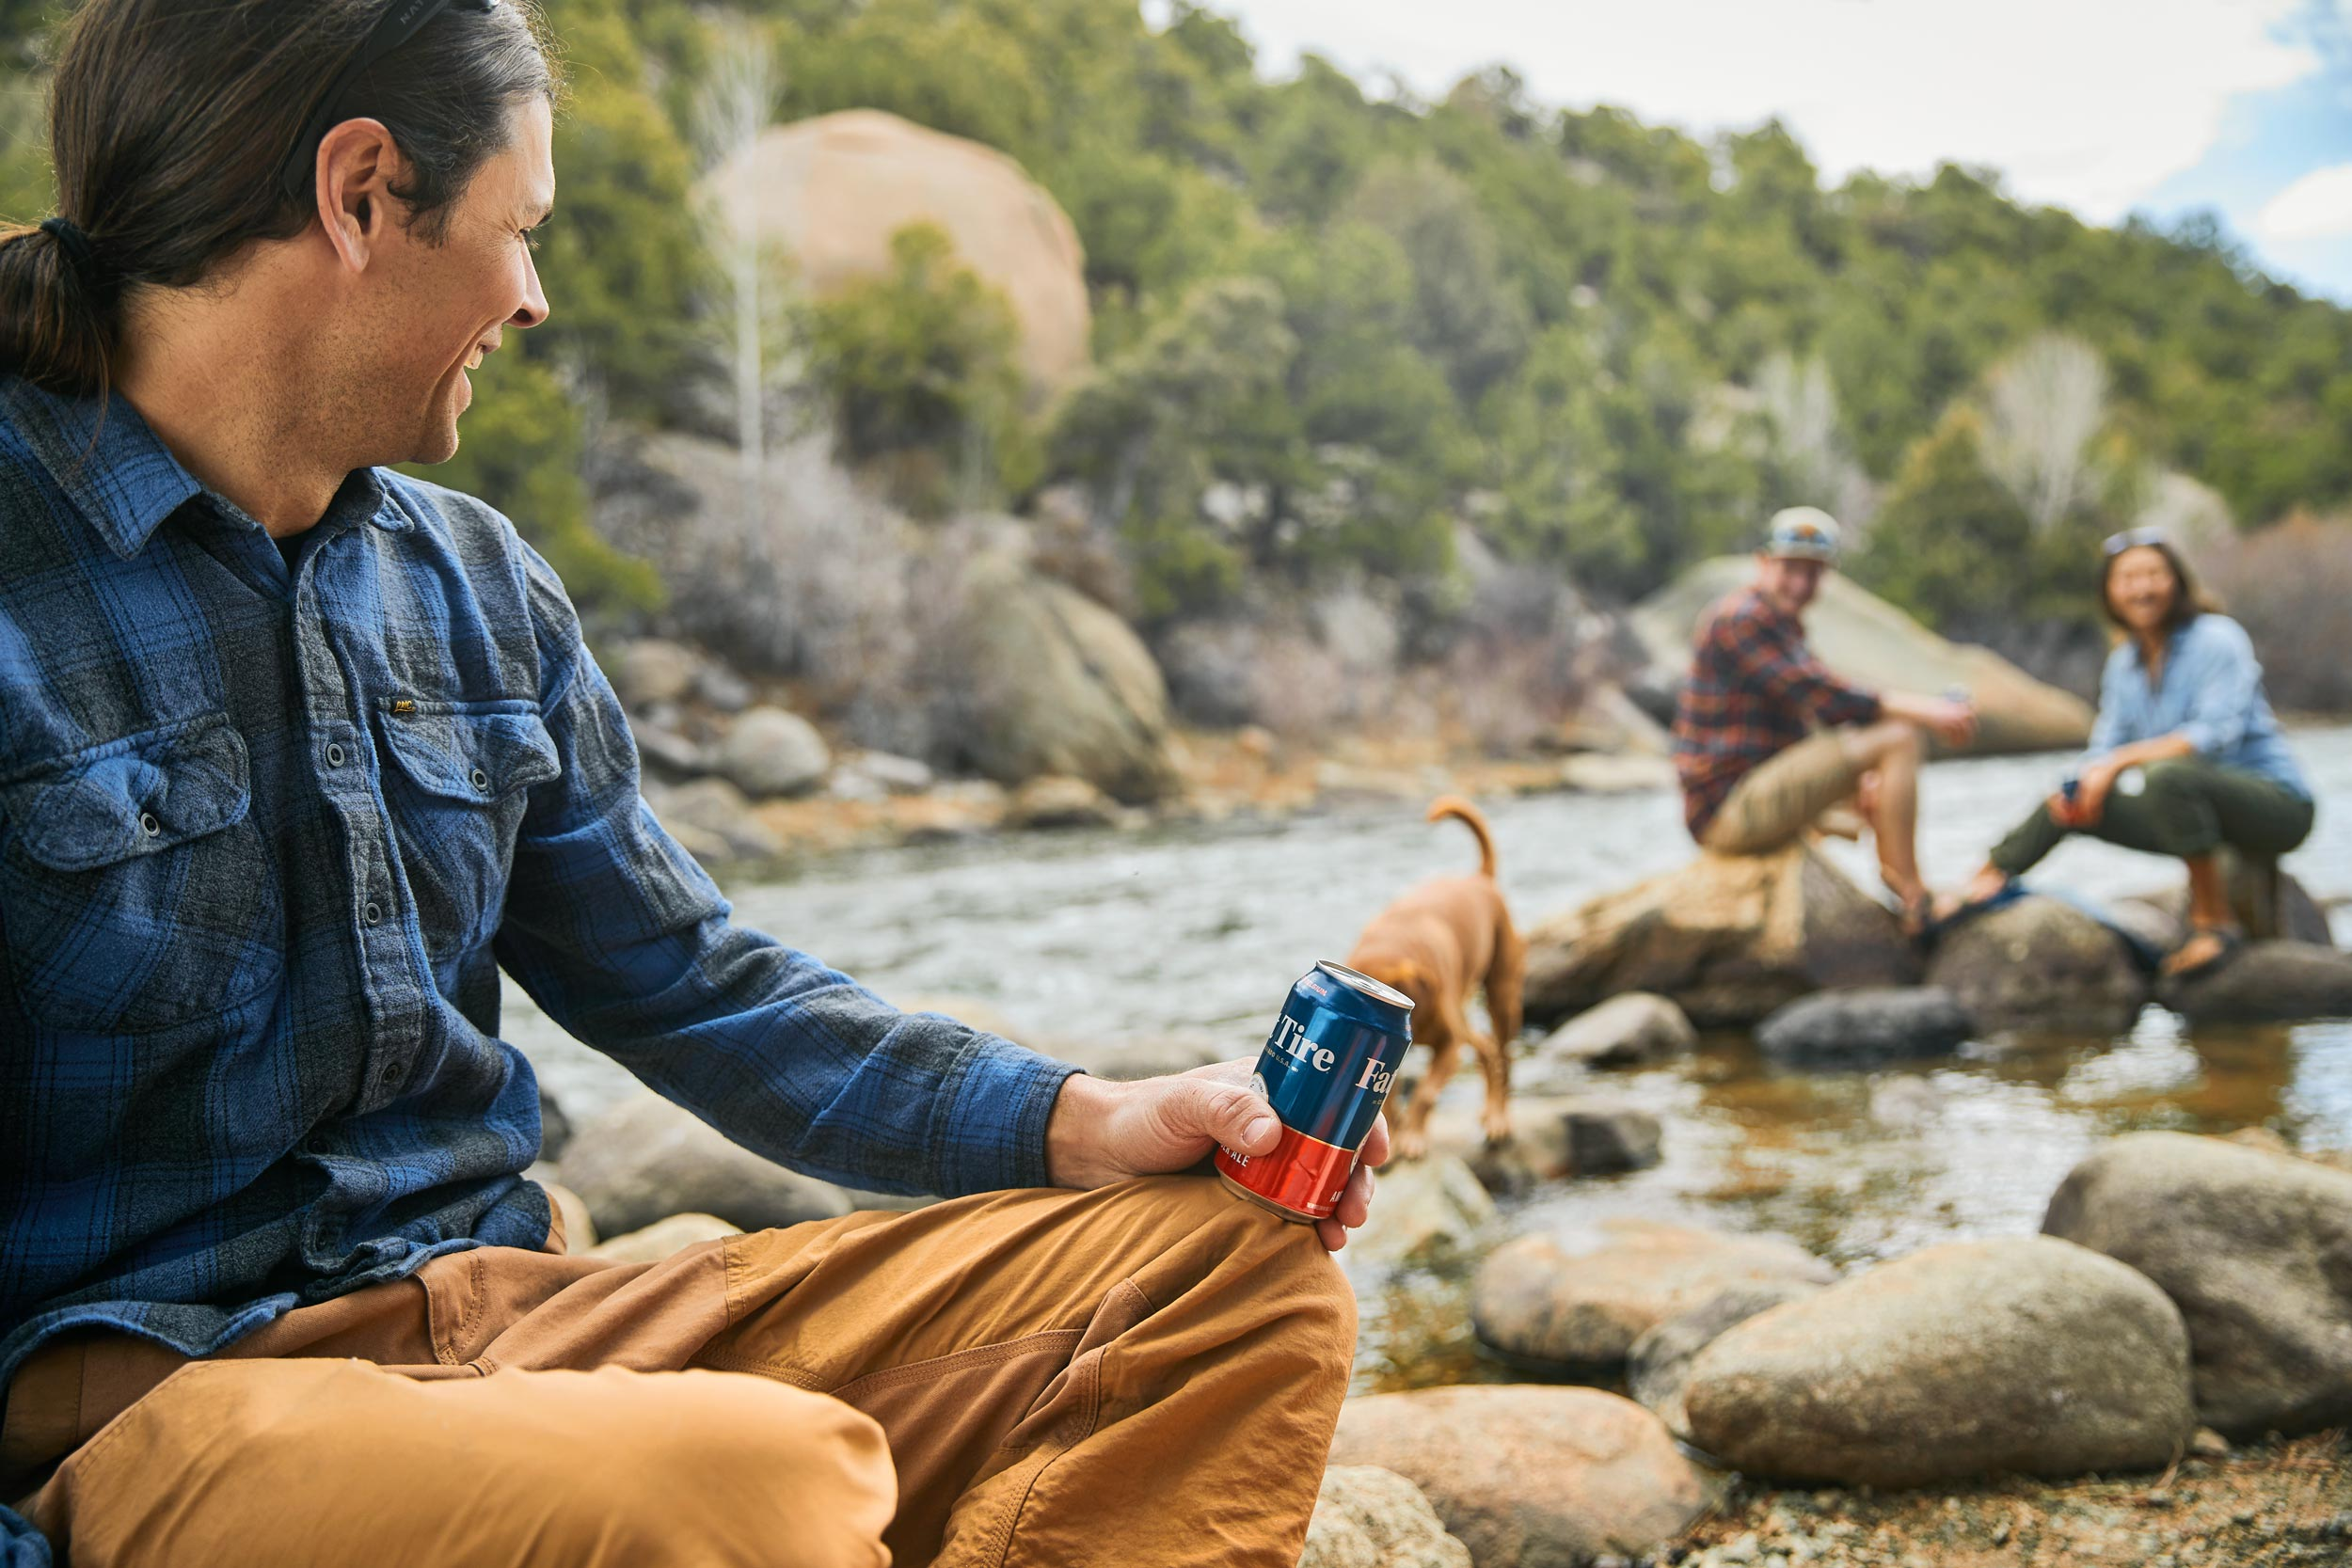 Andrew Maguire photographs a Fat Tire campaign in picturesque Colorado for New Belgium Brewing.